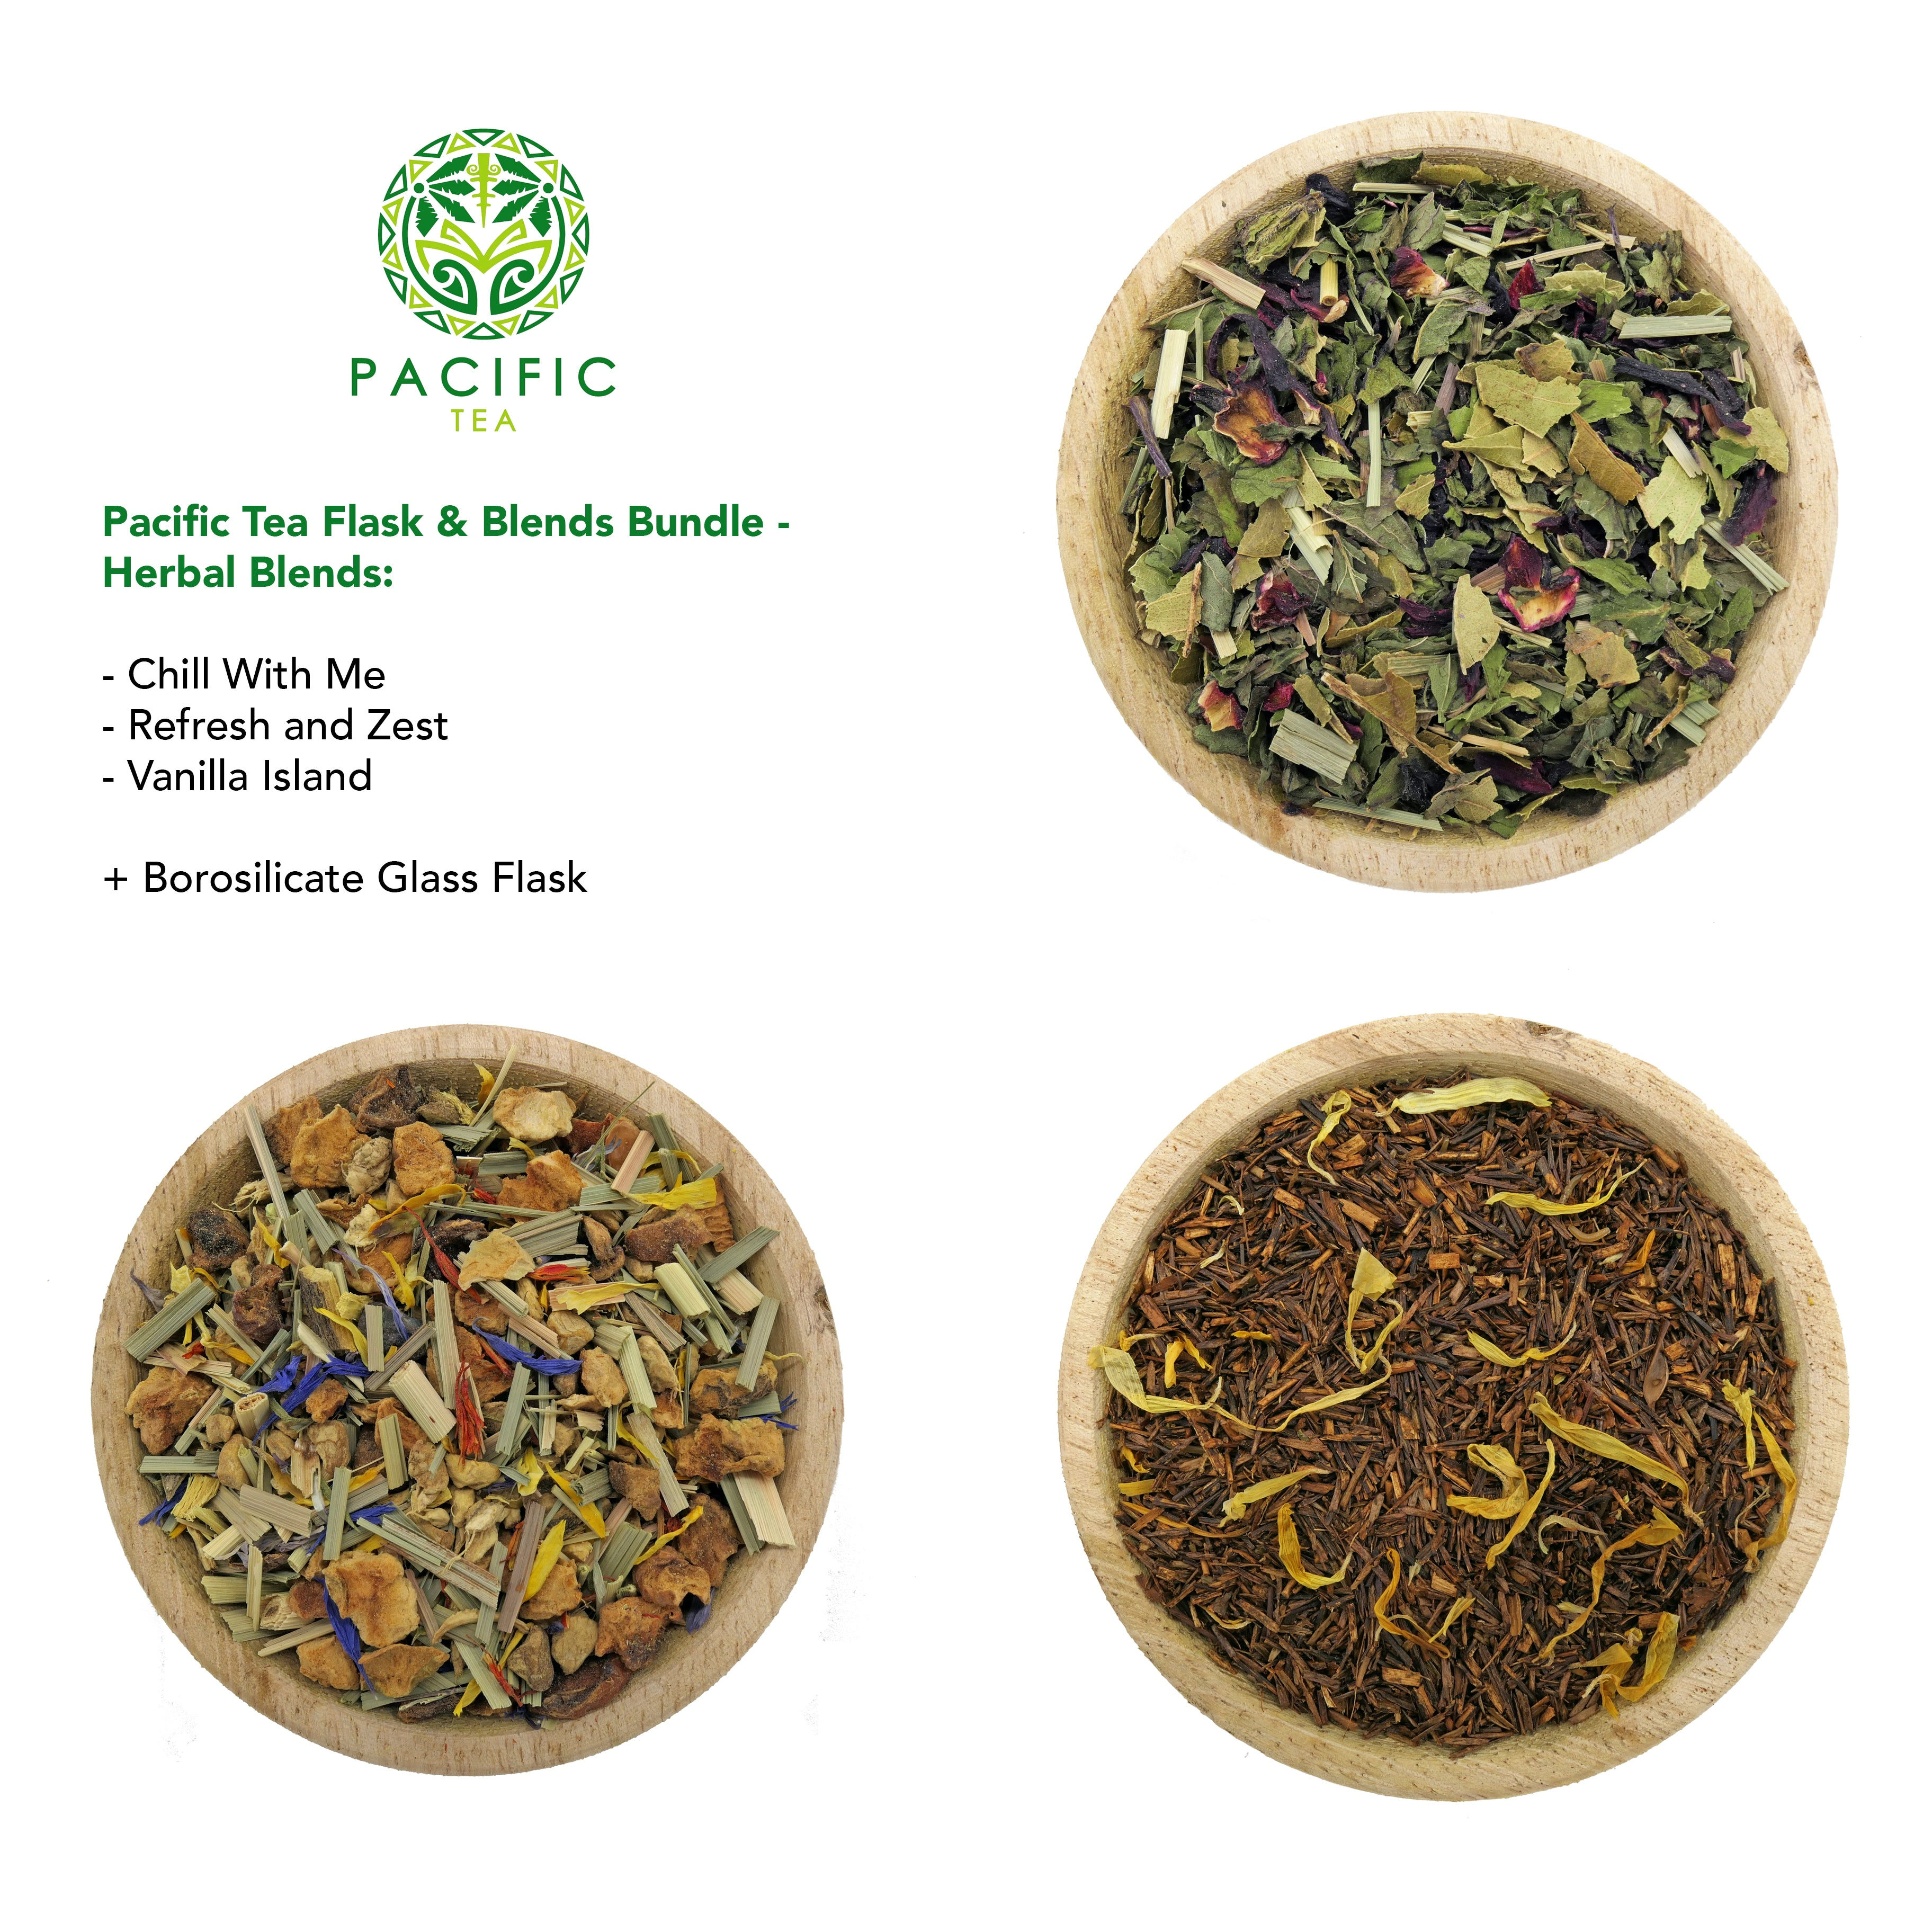 Pacific Tea Flask & Blends Bundle (3 blends + glass flask)